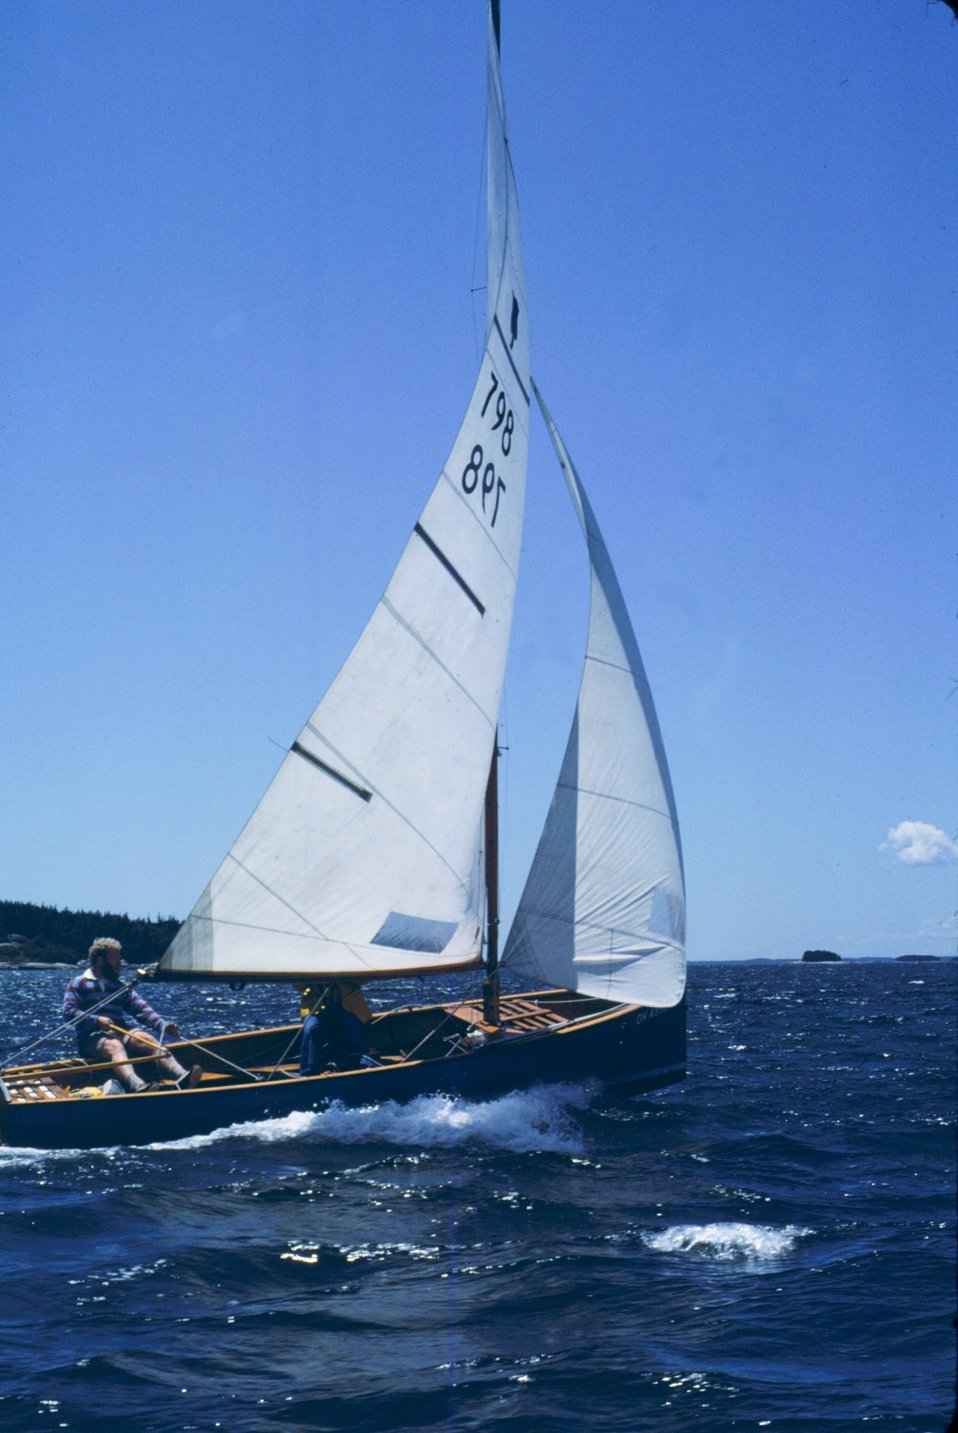 Sailing in Penobscot Bay in Thistle class sailboat.